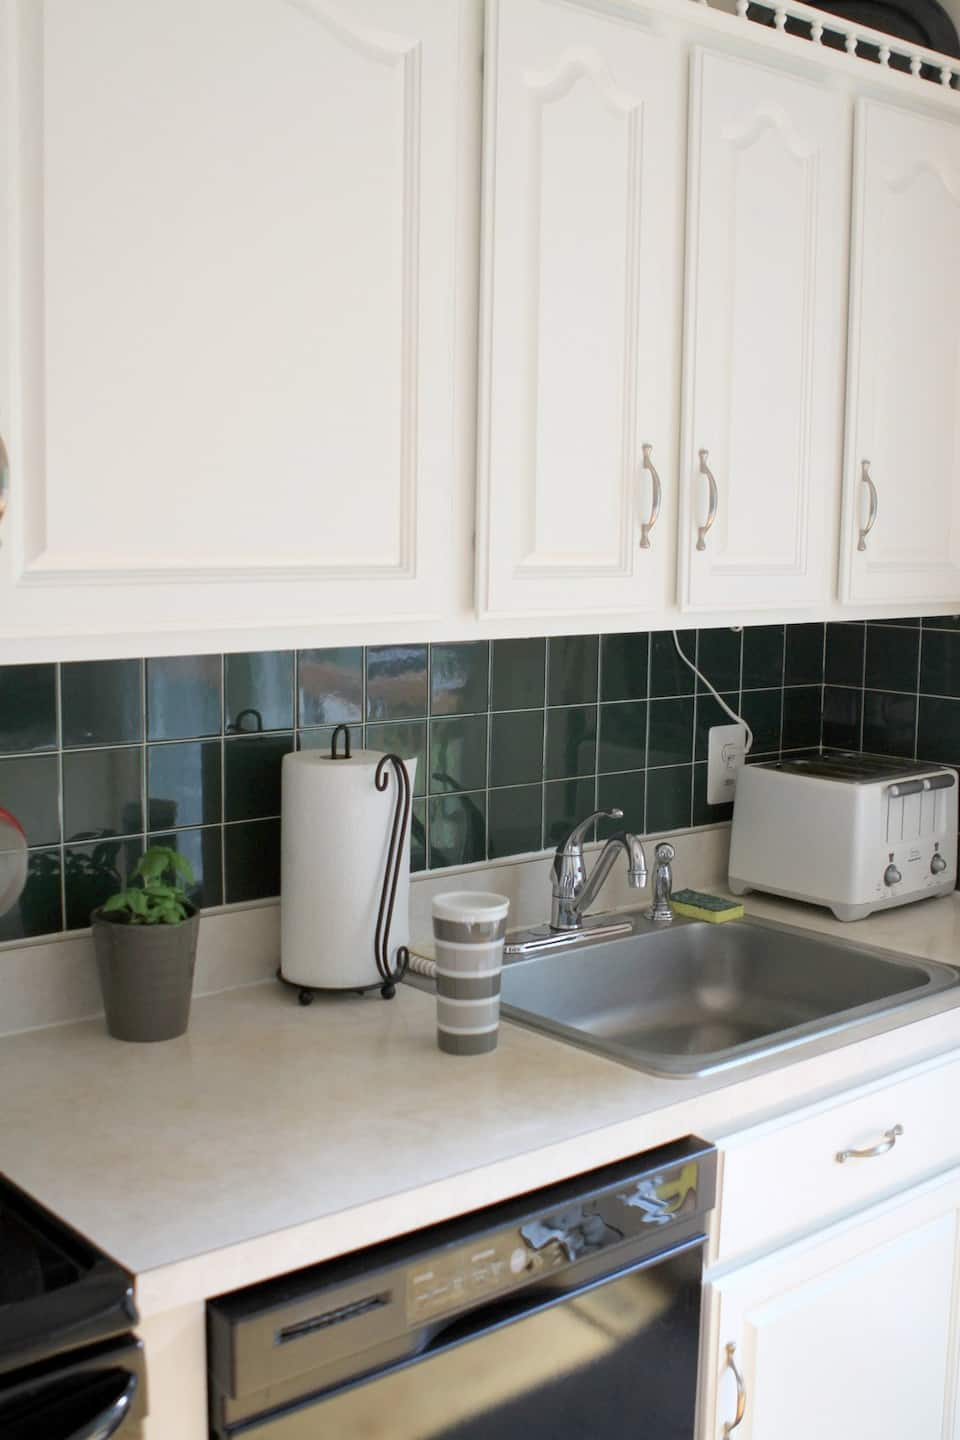 Painting Kitchen Cabinets: Before and After | Angie\'s List